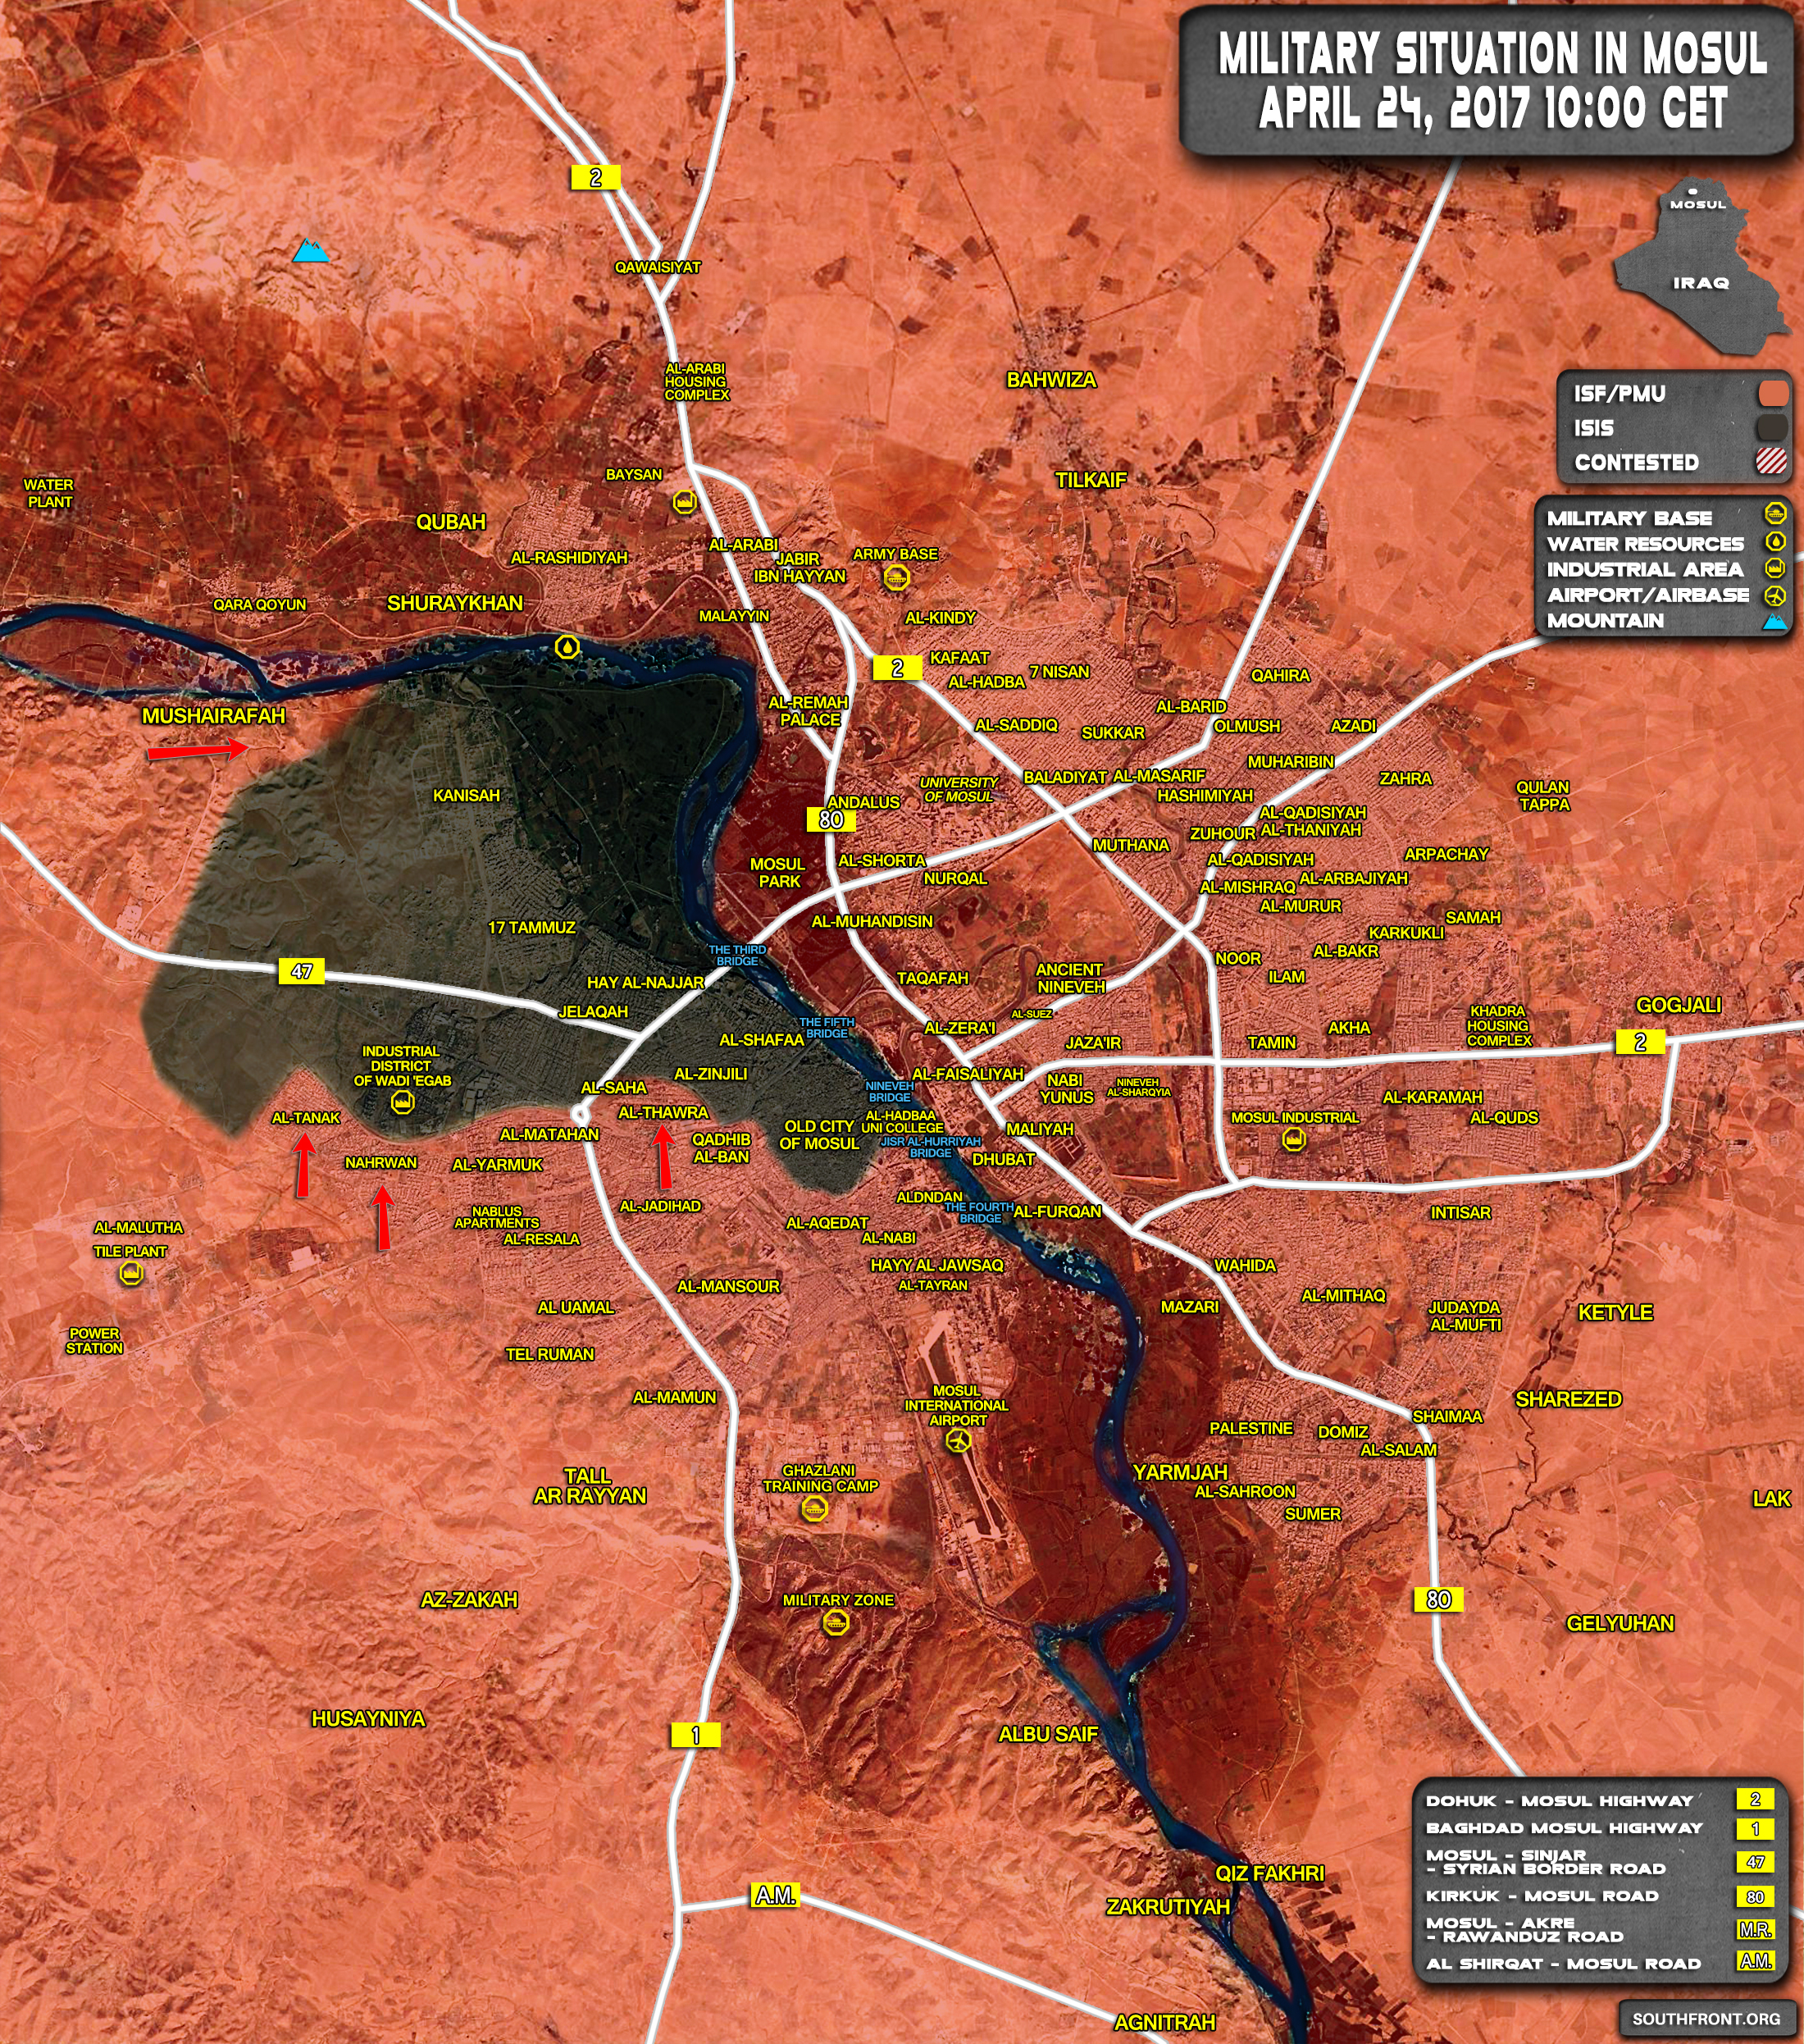 Military Situation In Iraqi City Of Mosul On April 24, 2017 (Map Update)